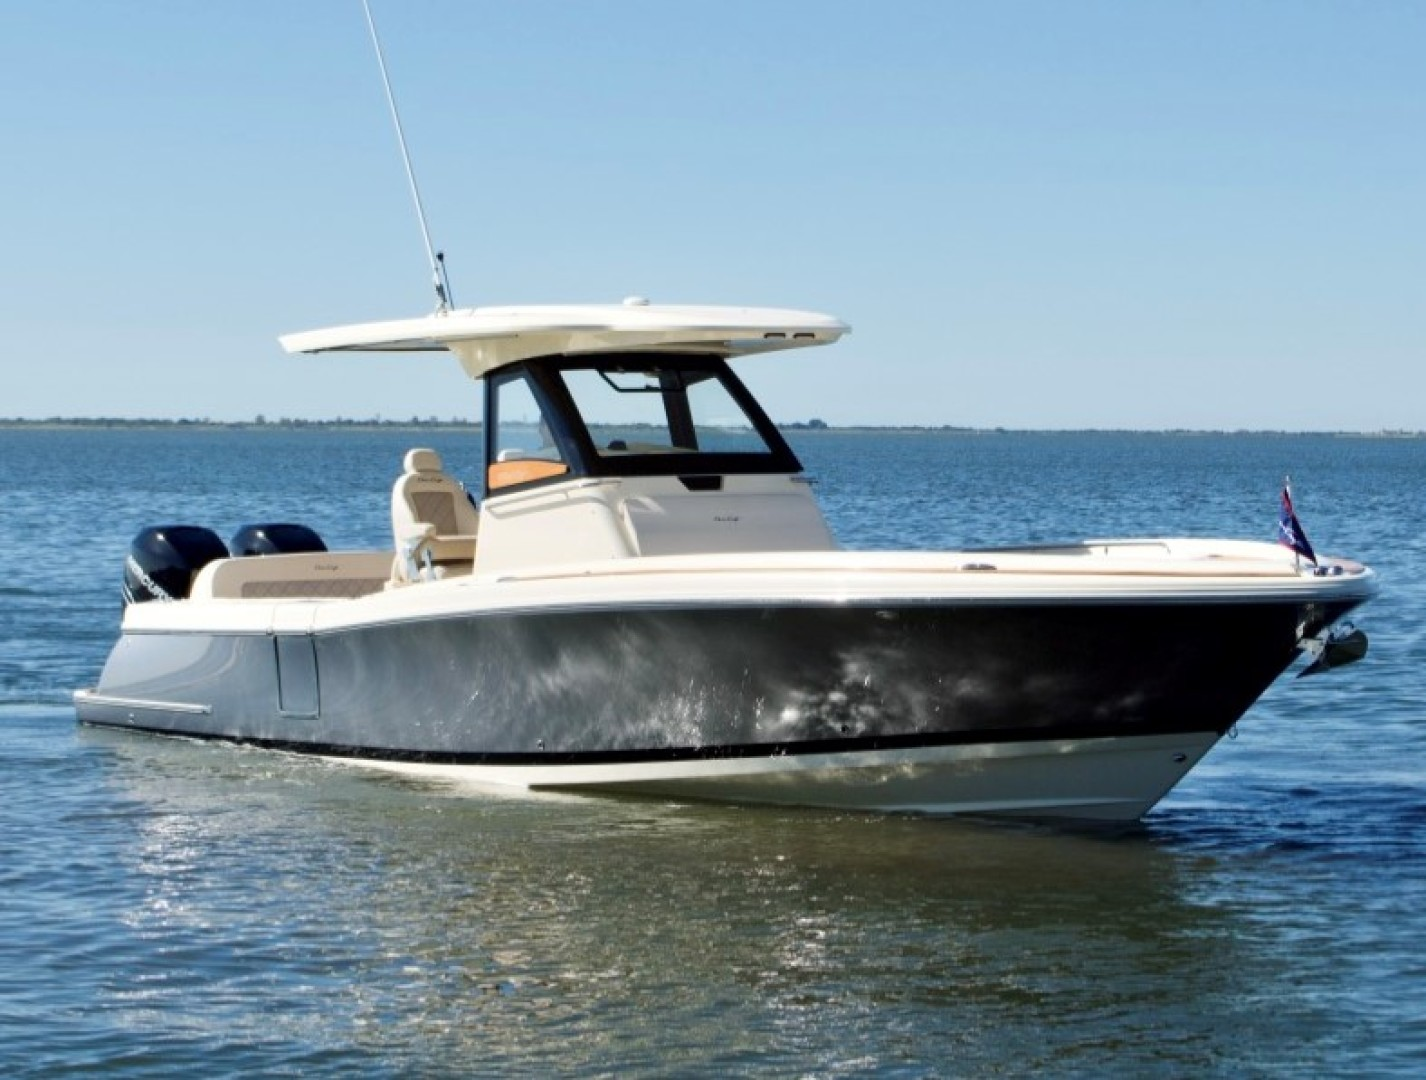 Chris-Craft-30 Catalina 2018-Blue Waters Long Island-New York-United States Main Profile-1228927 | Thumbnail